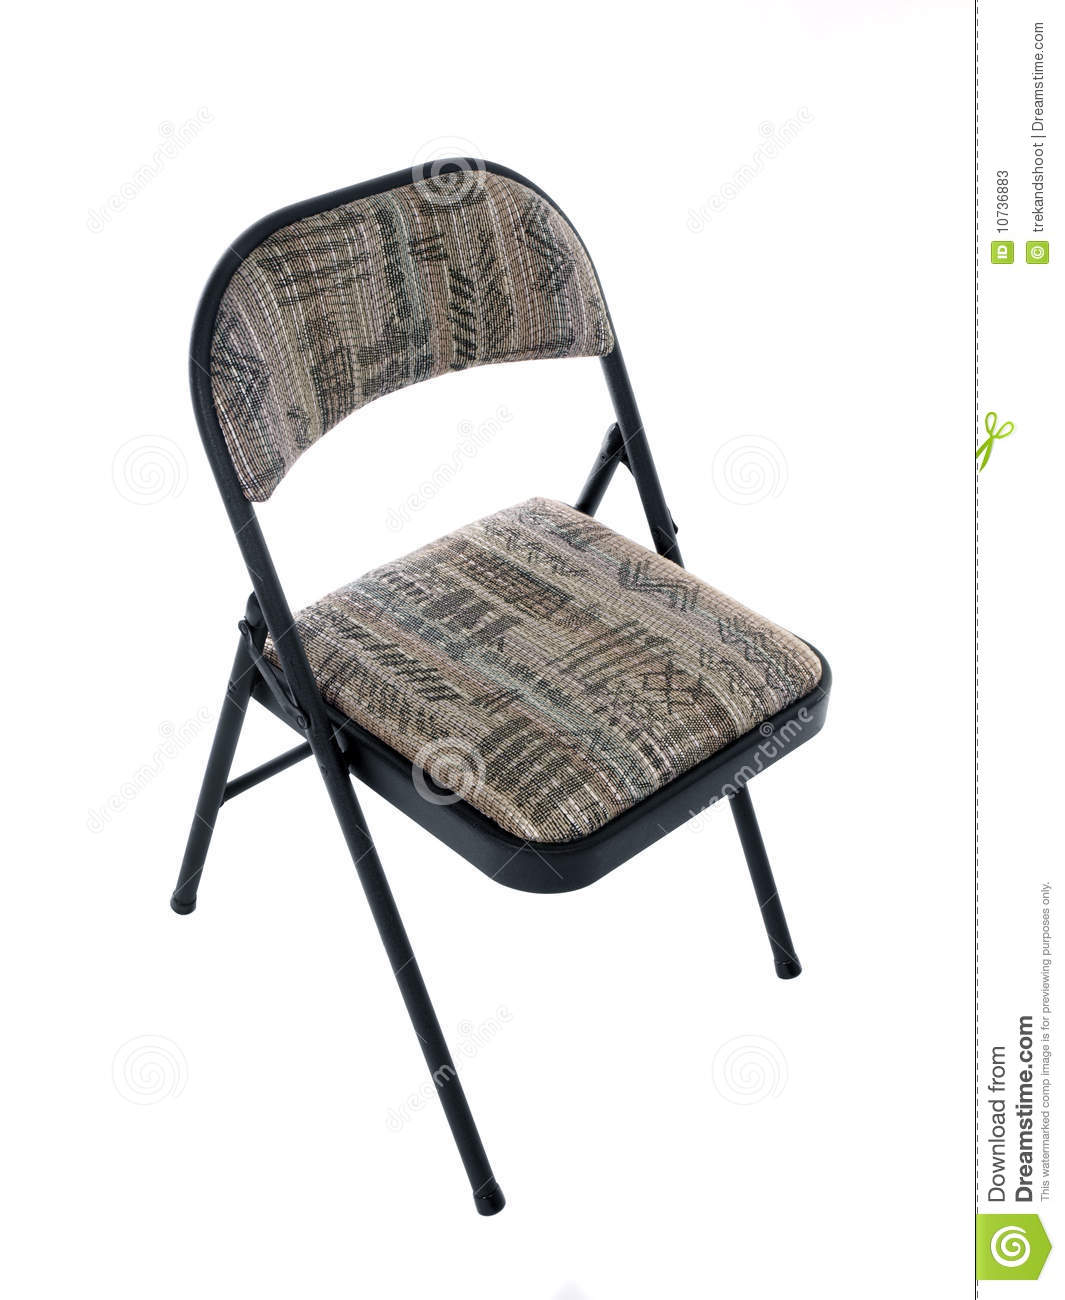 Soft Folding Chairs Folding Chair Stock Photos Image 10736883